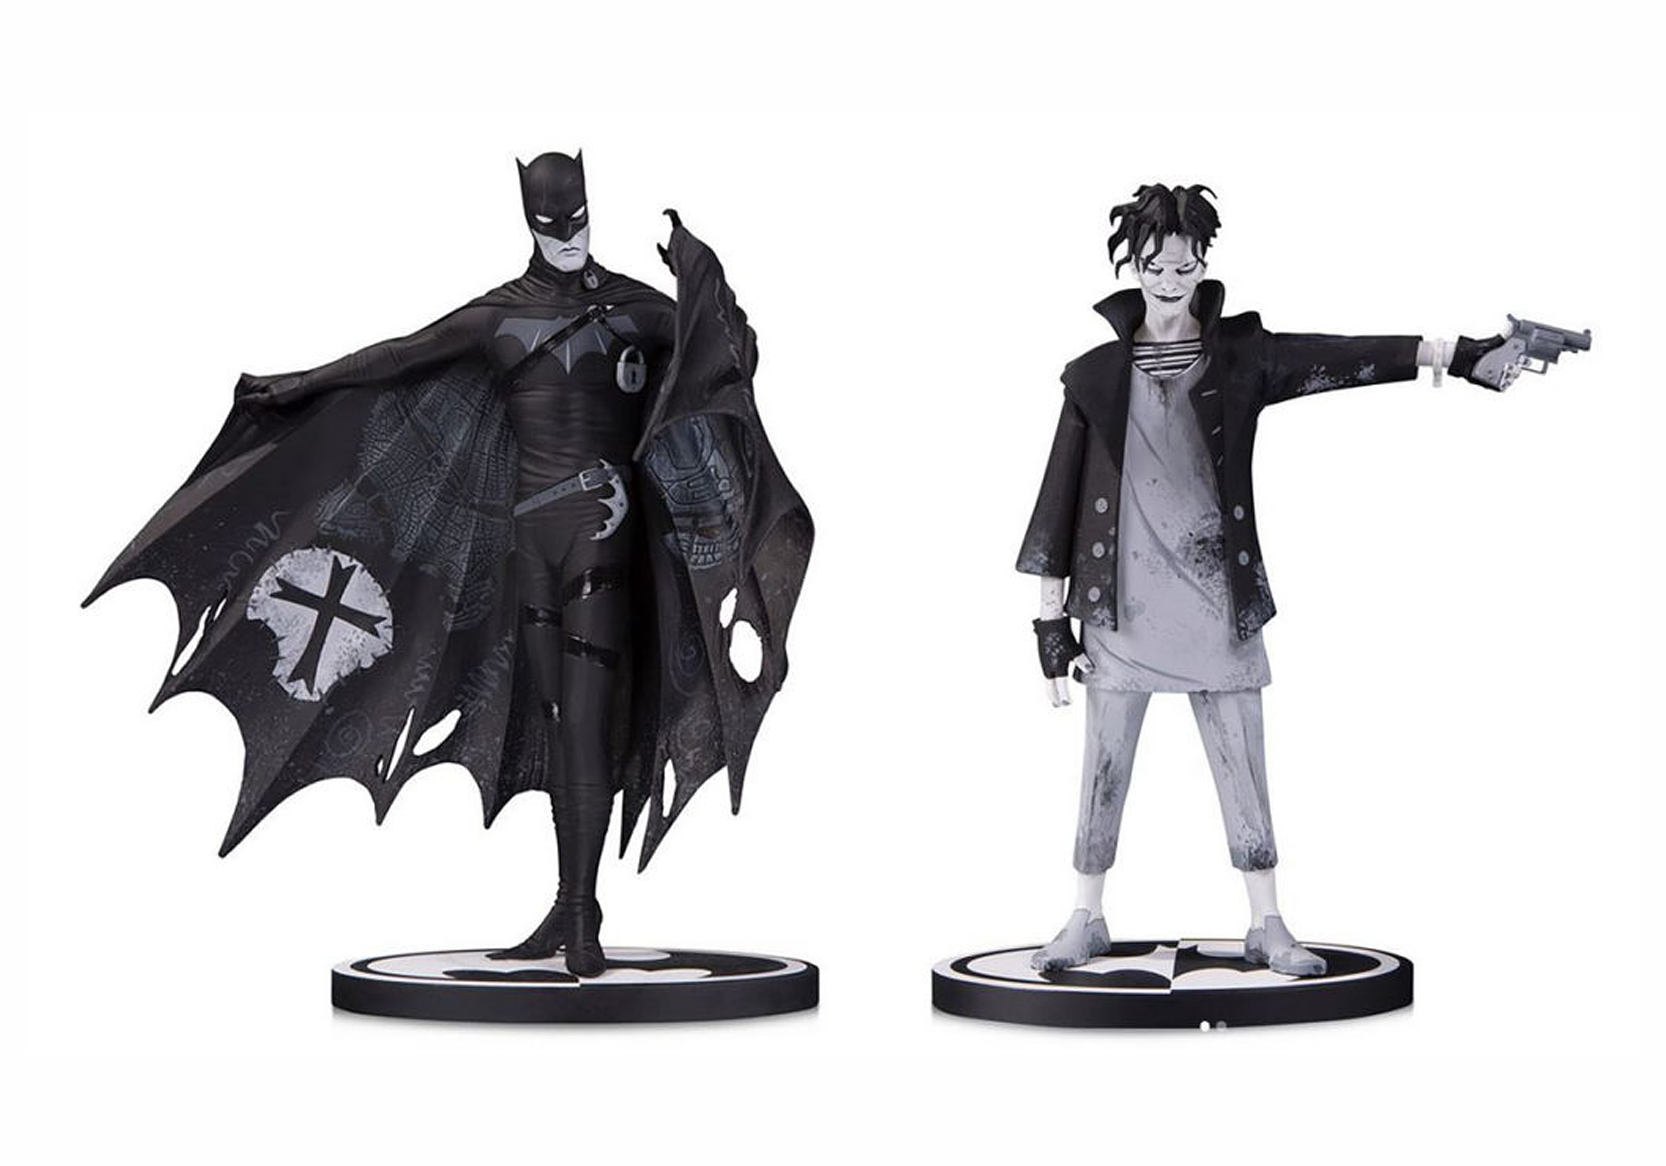 Dc Collectibles Batman Black and White Statues (Gerard Way)